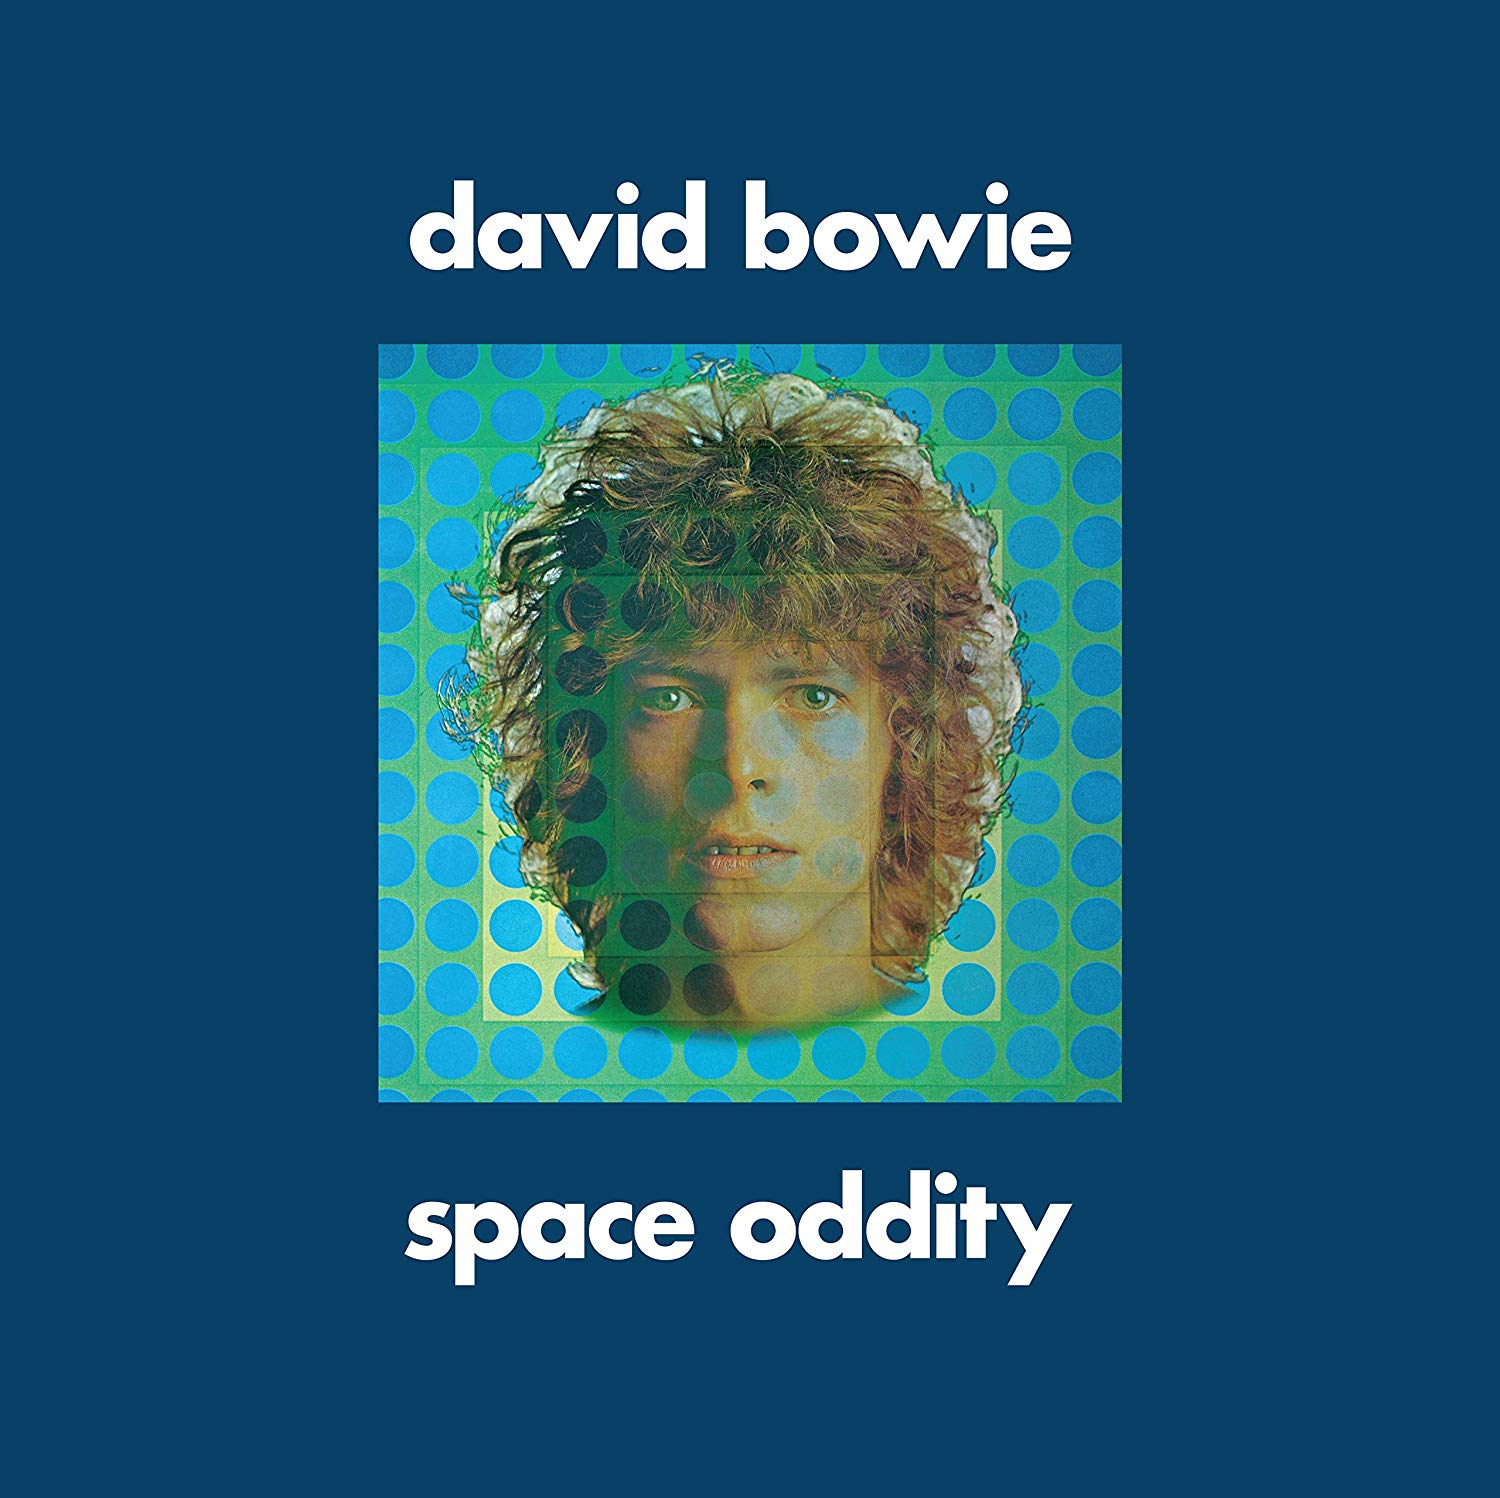 David Bowie - Space Oddity: 2019 Mix [LP]